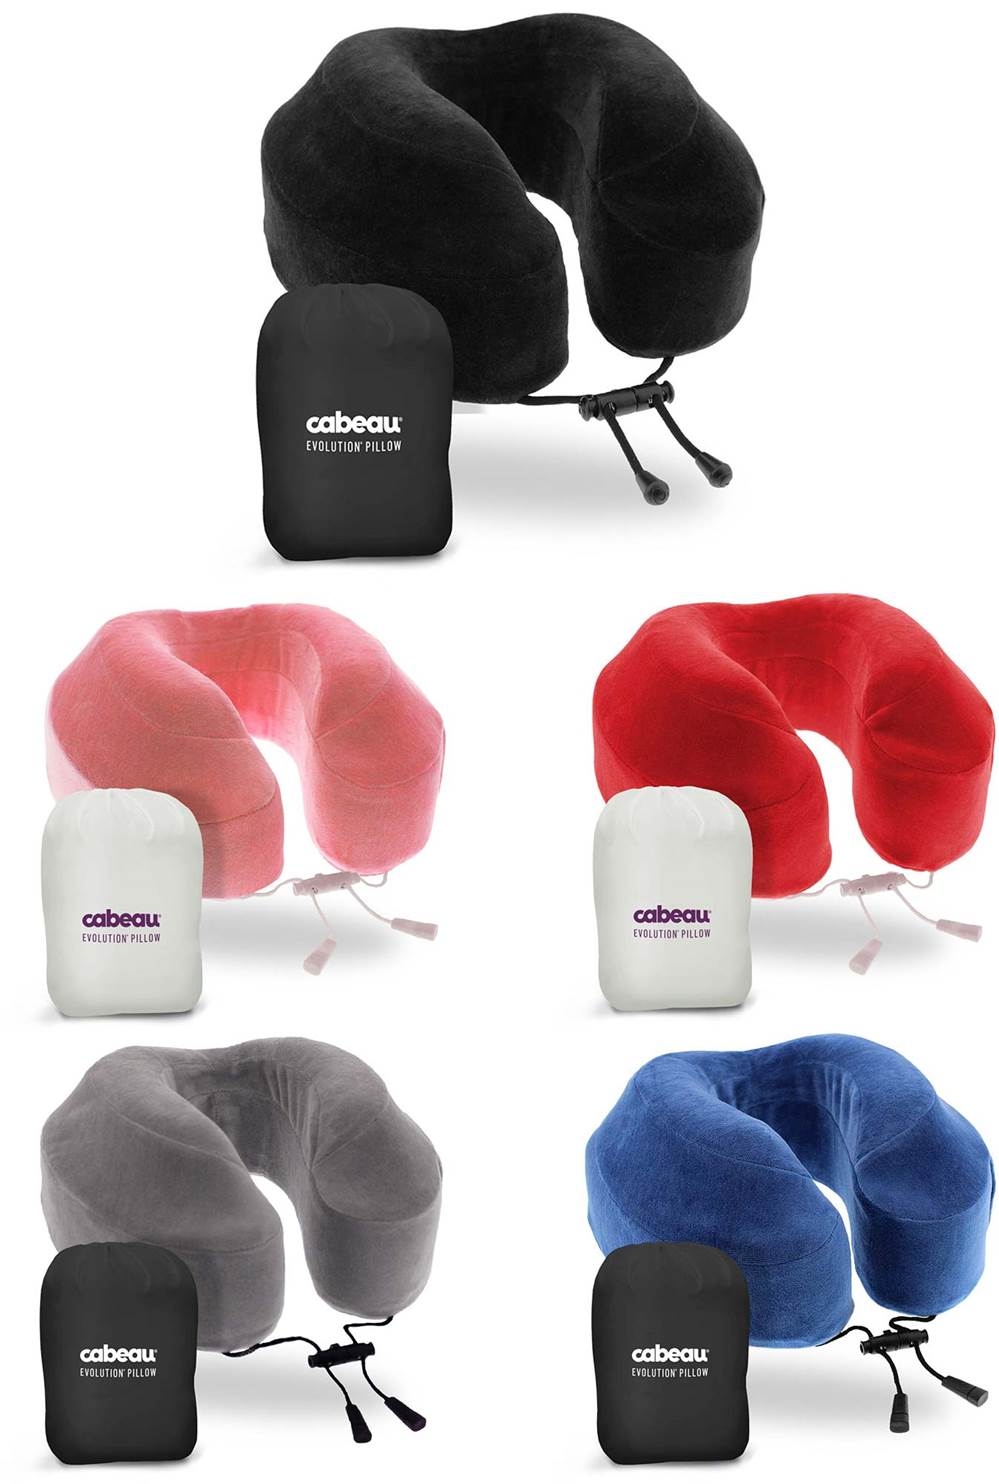 Cabeau Evolution Memory Foam Travel Pillow With Ear Plugs